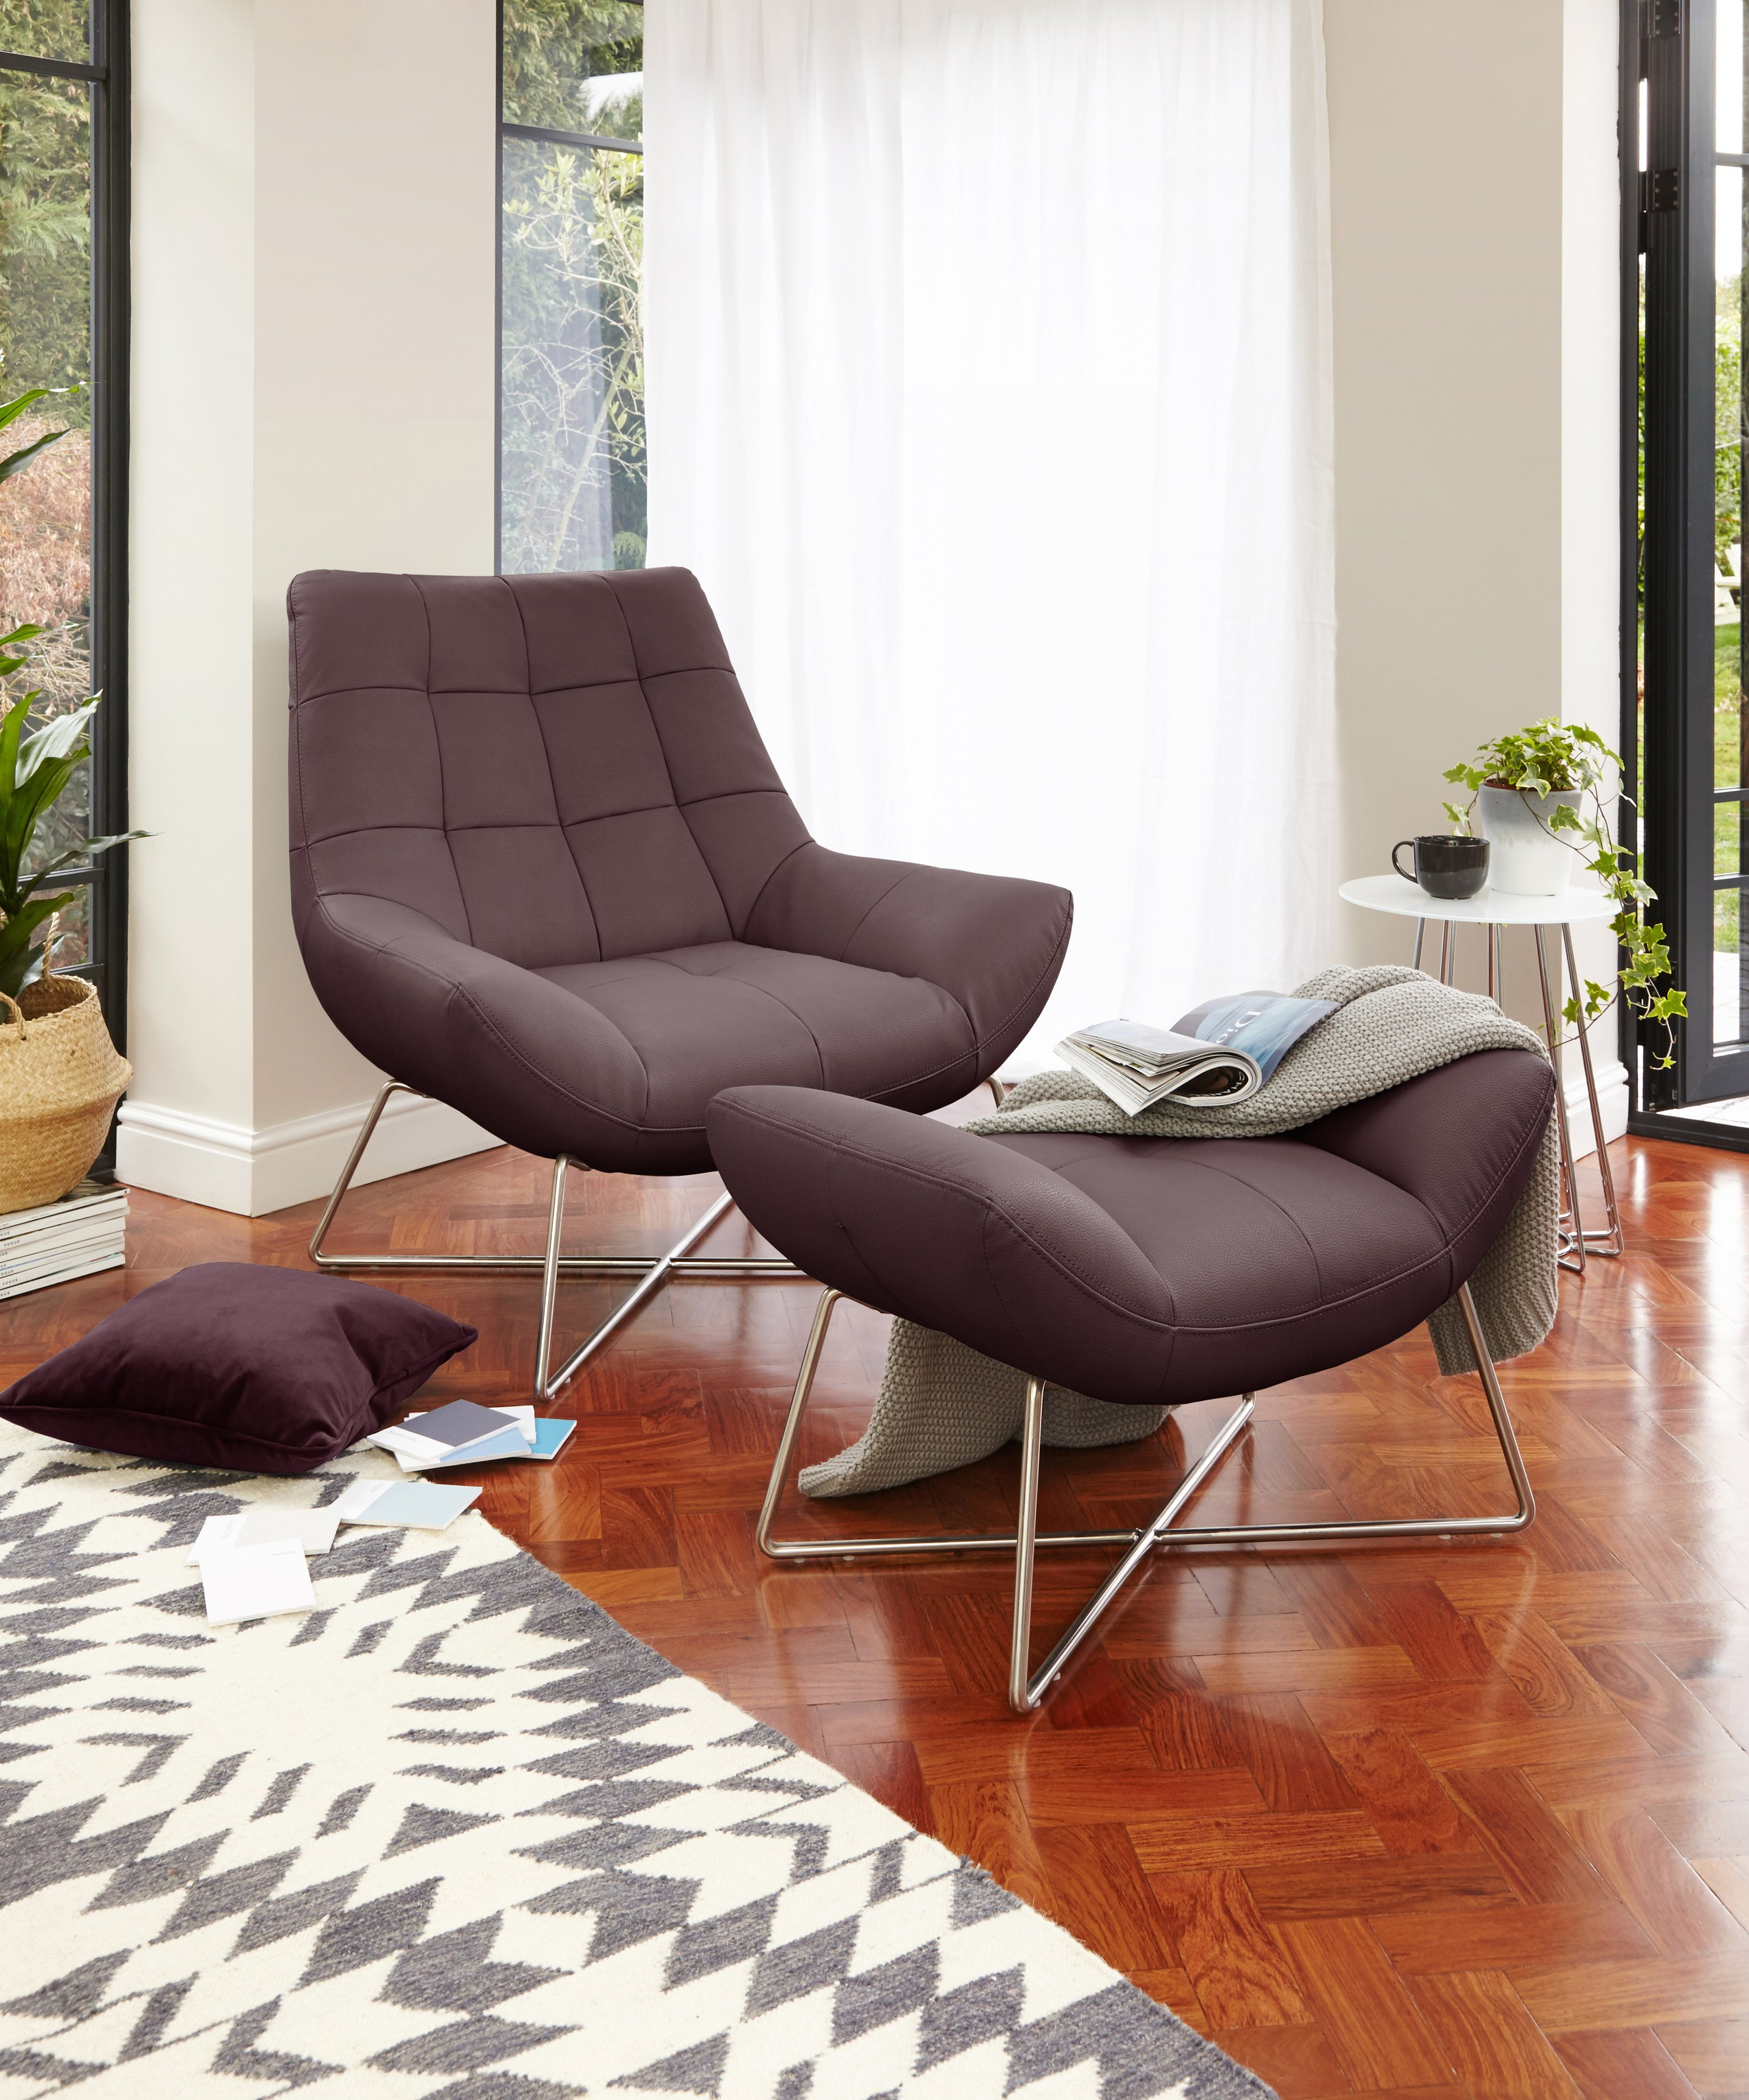 Canio Leather Armchair and Footstool